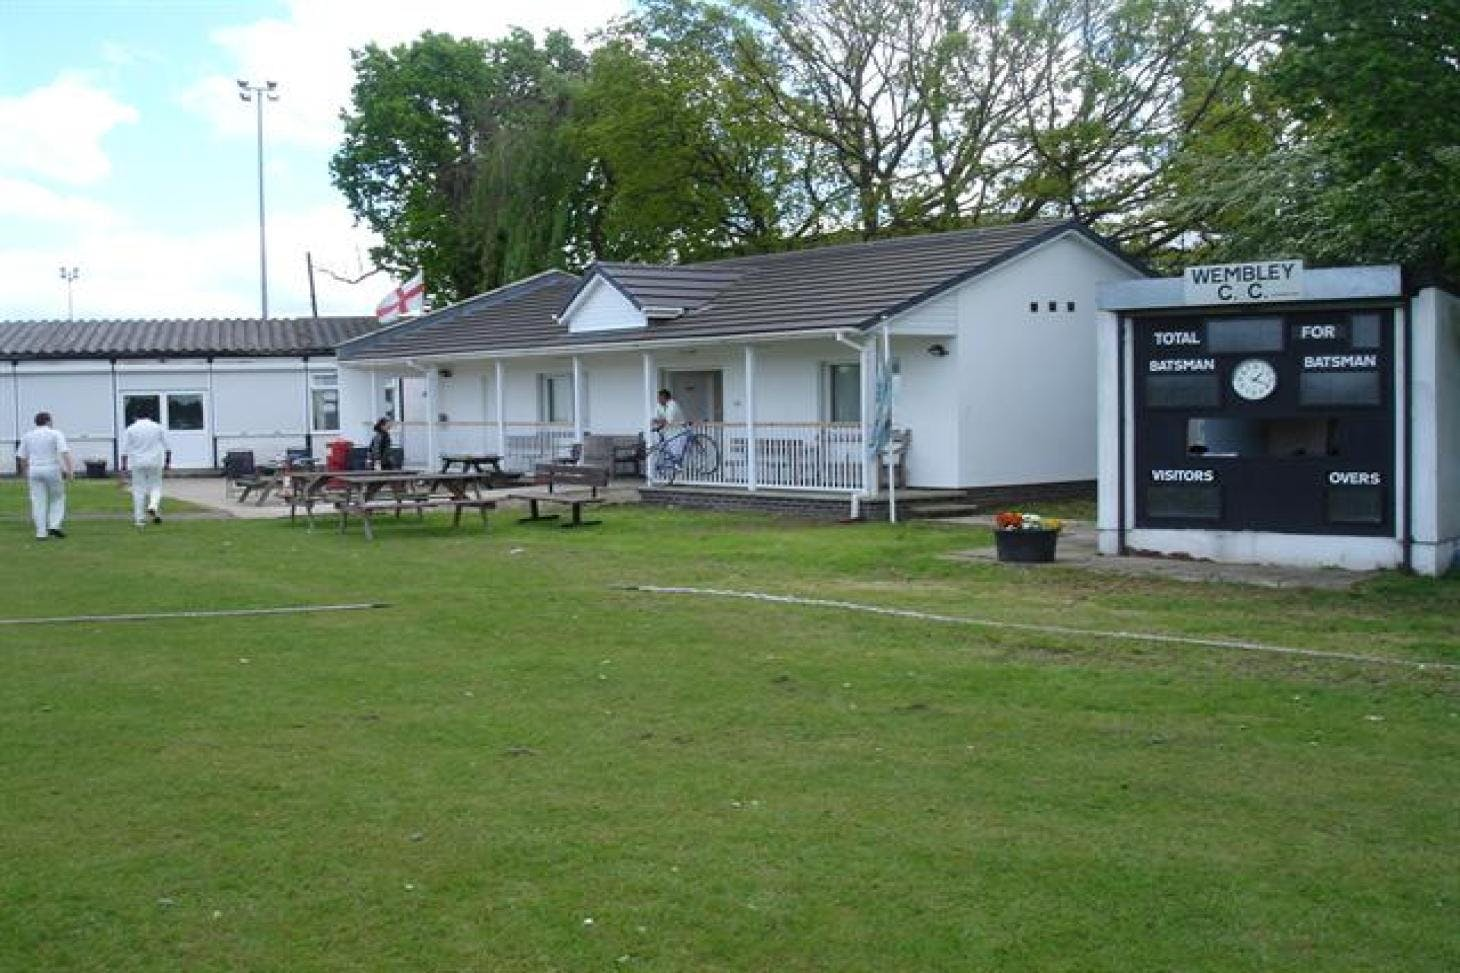 Wembley Cricket Club Nets | Grass cricket facilities